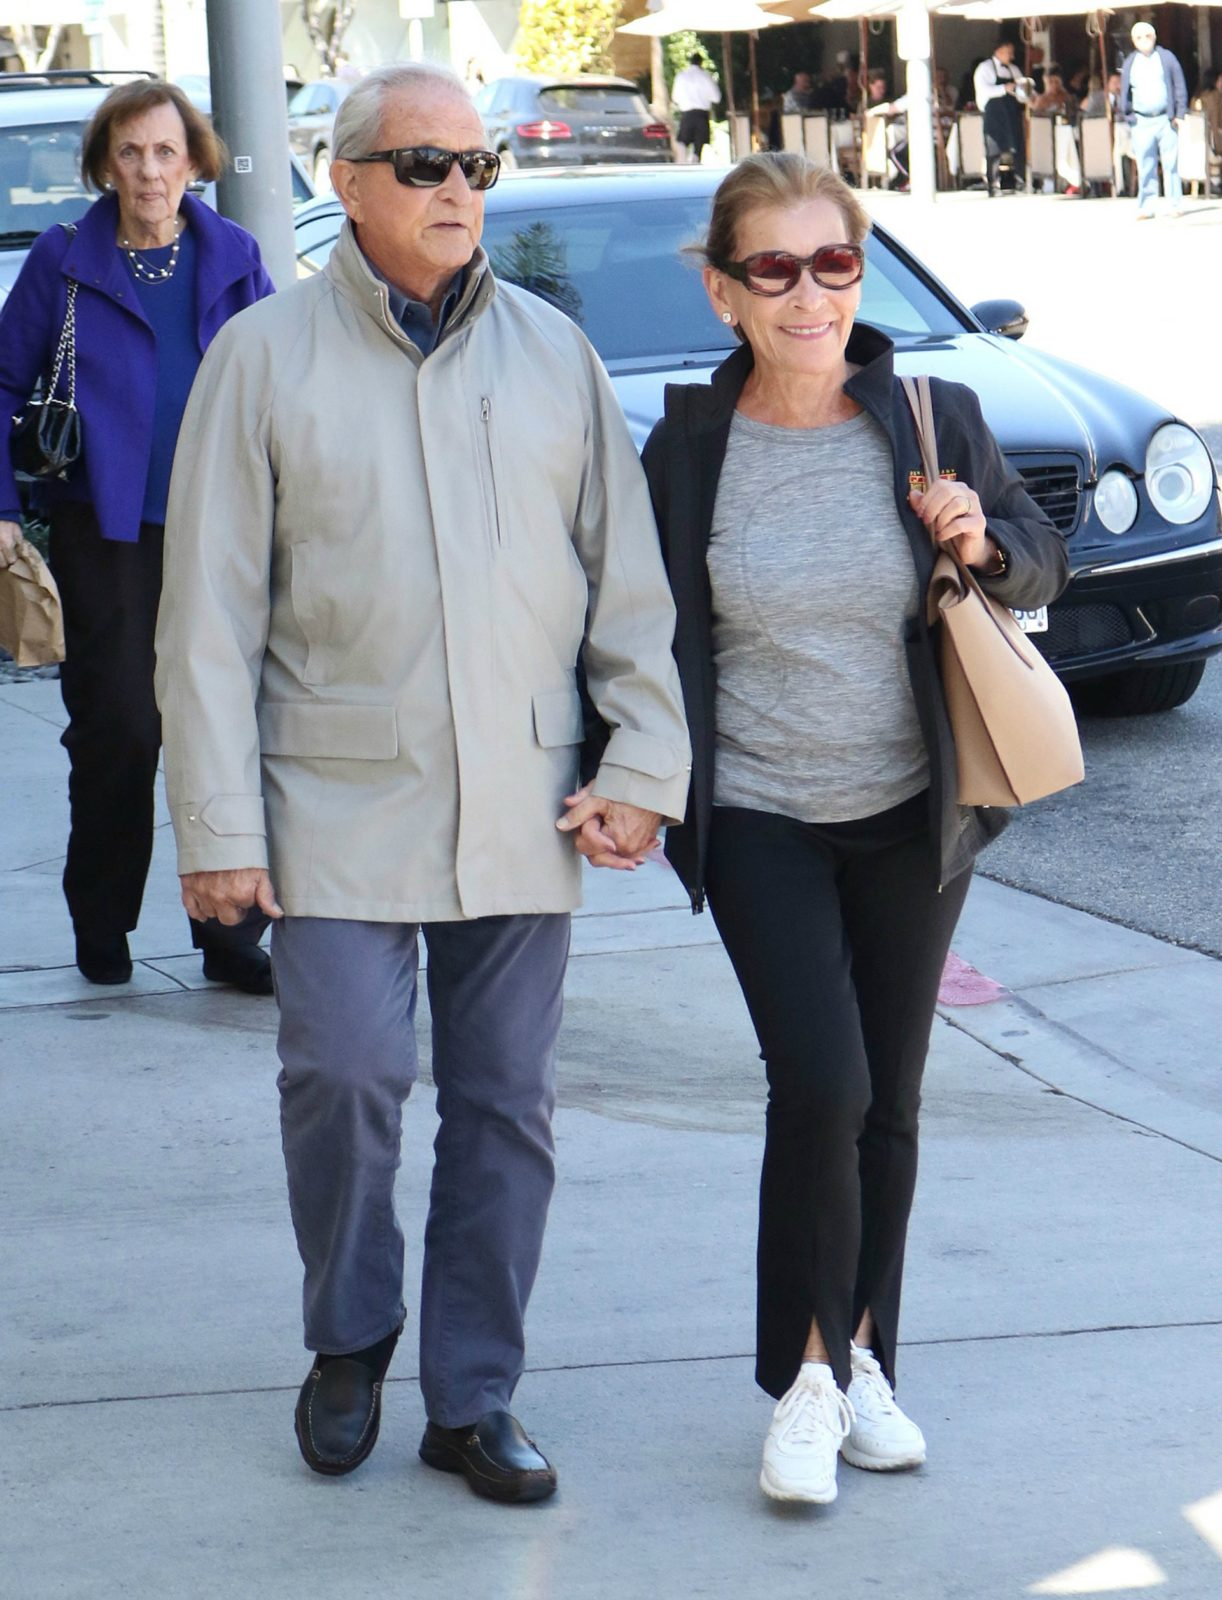 Judge Judy showed off her new hairstyle last month alongside her husband Jerry.